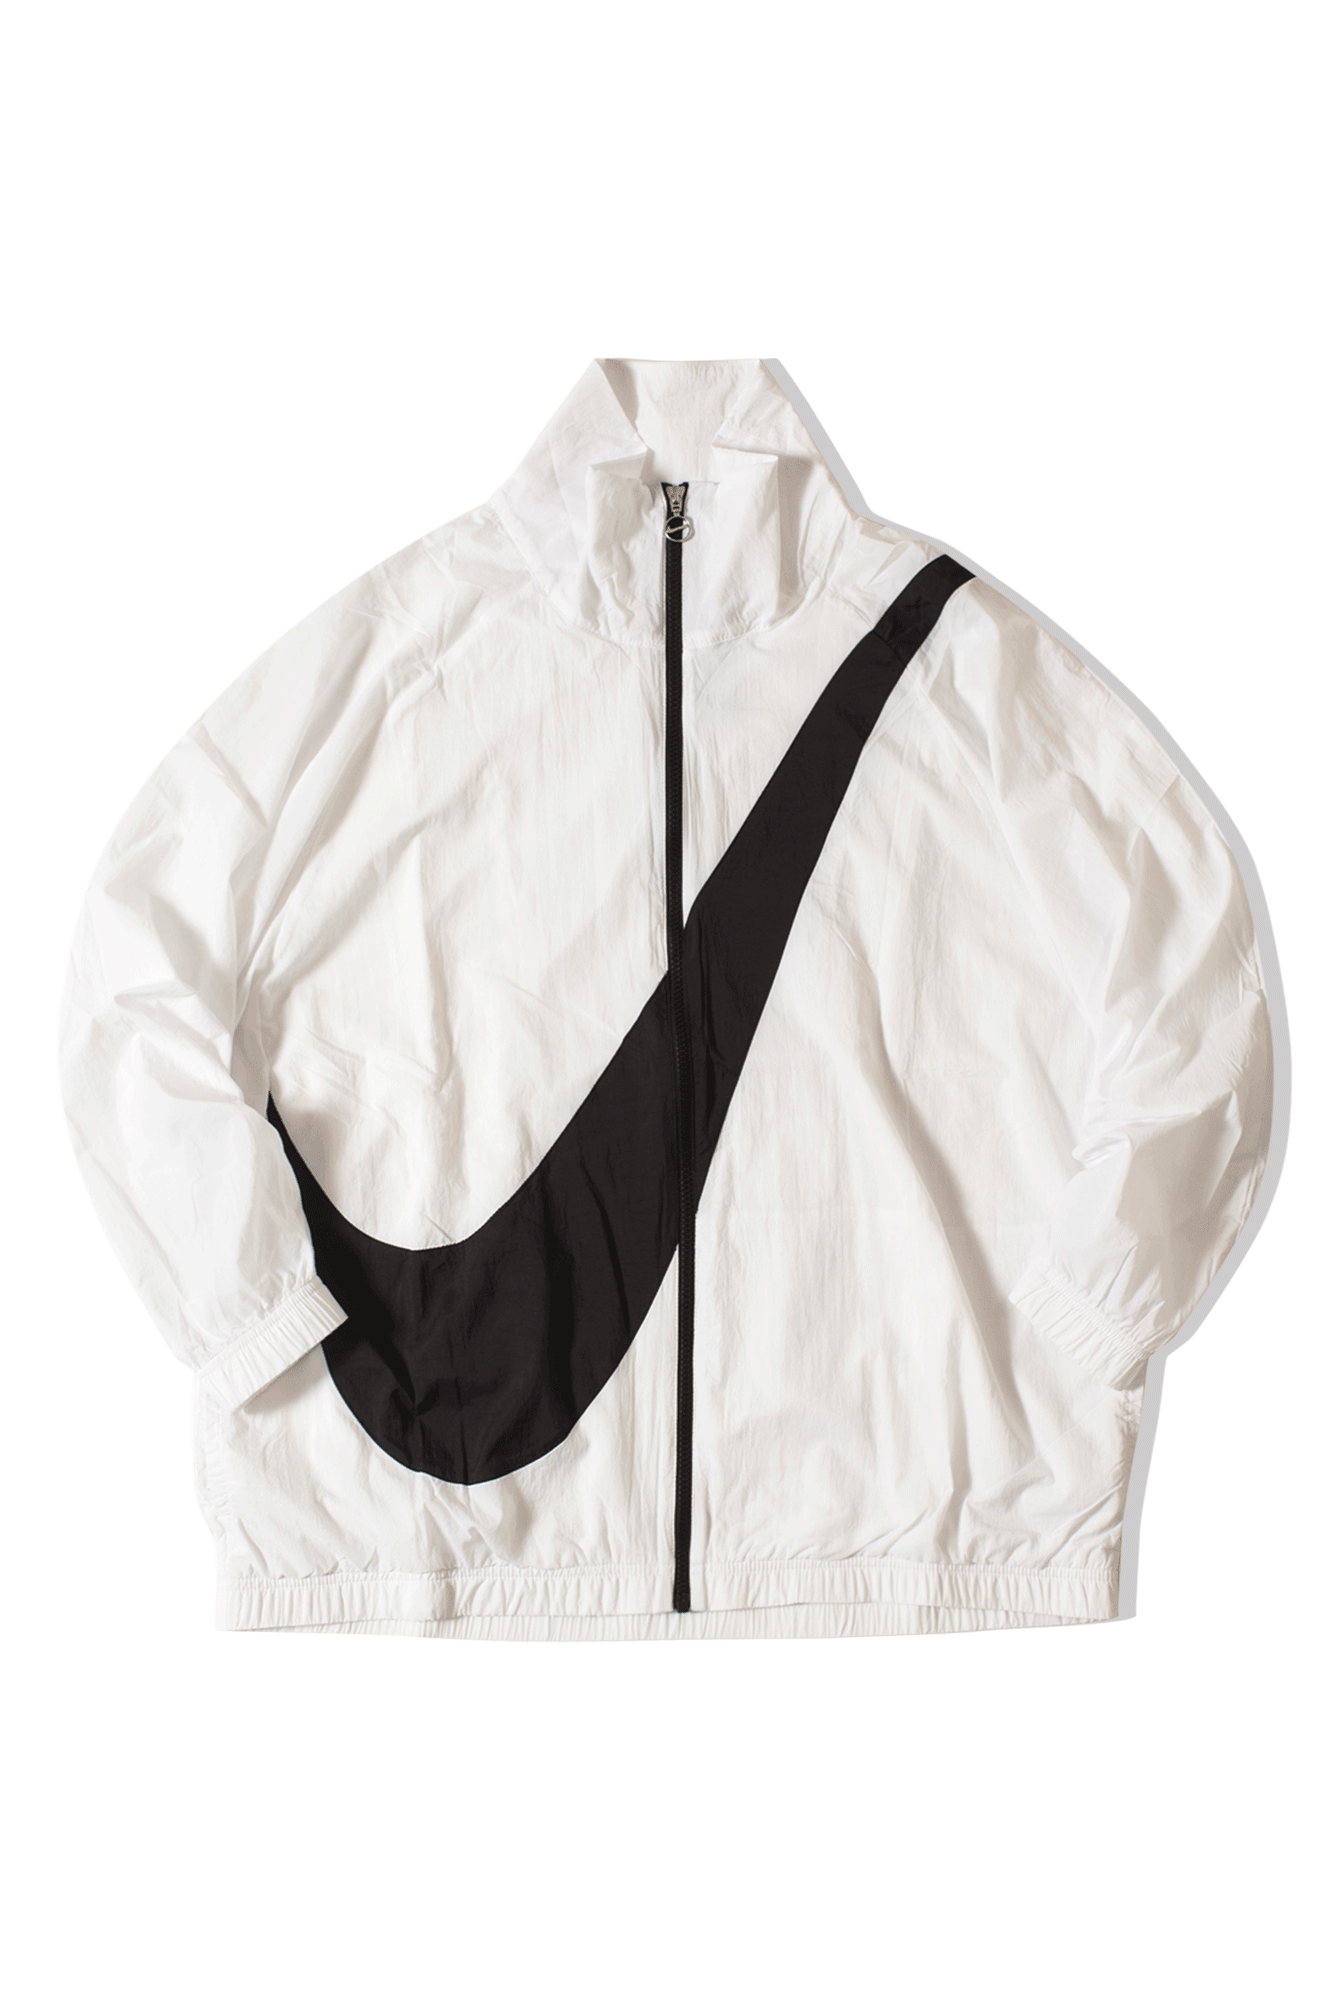 Nike Coats & Jackets W MSW SWSH Jkt WVN CB White BV3685#000#100#M - One Block Down